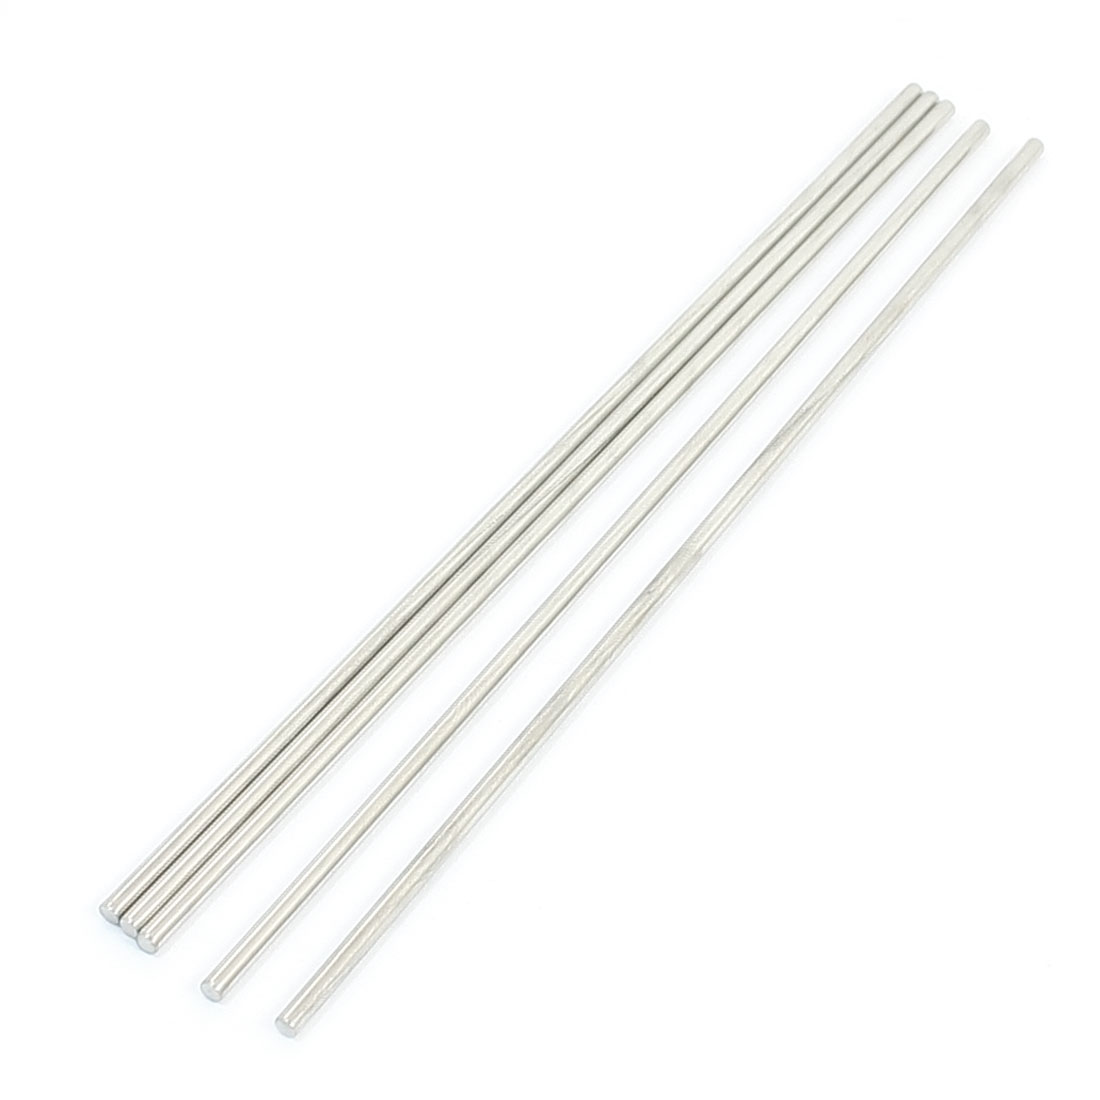 5PCS RC Airplane Car Toy Replacement Round Rods 150mm x 2mm